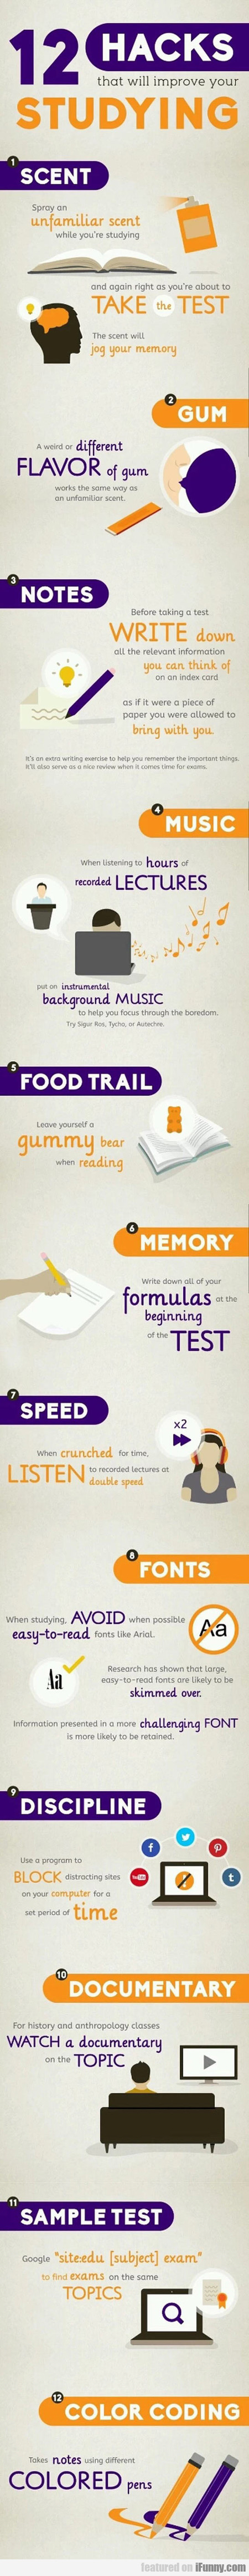 12 Hacks That Will Improve Studying